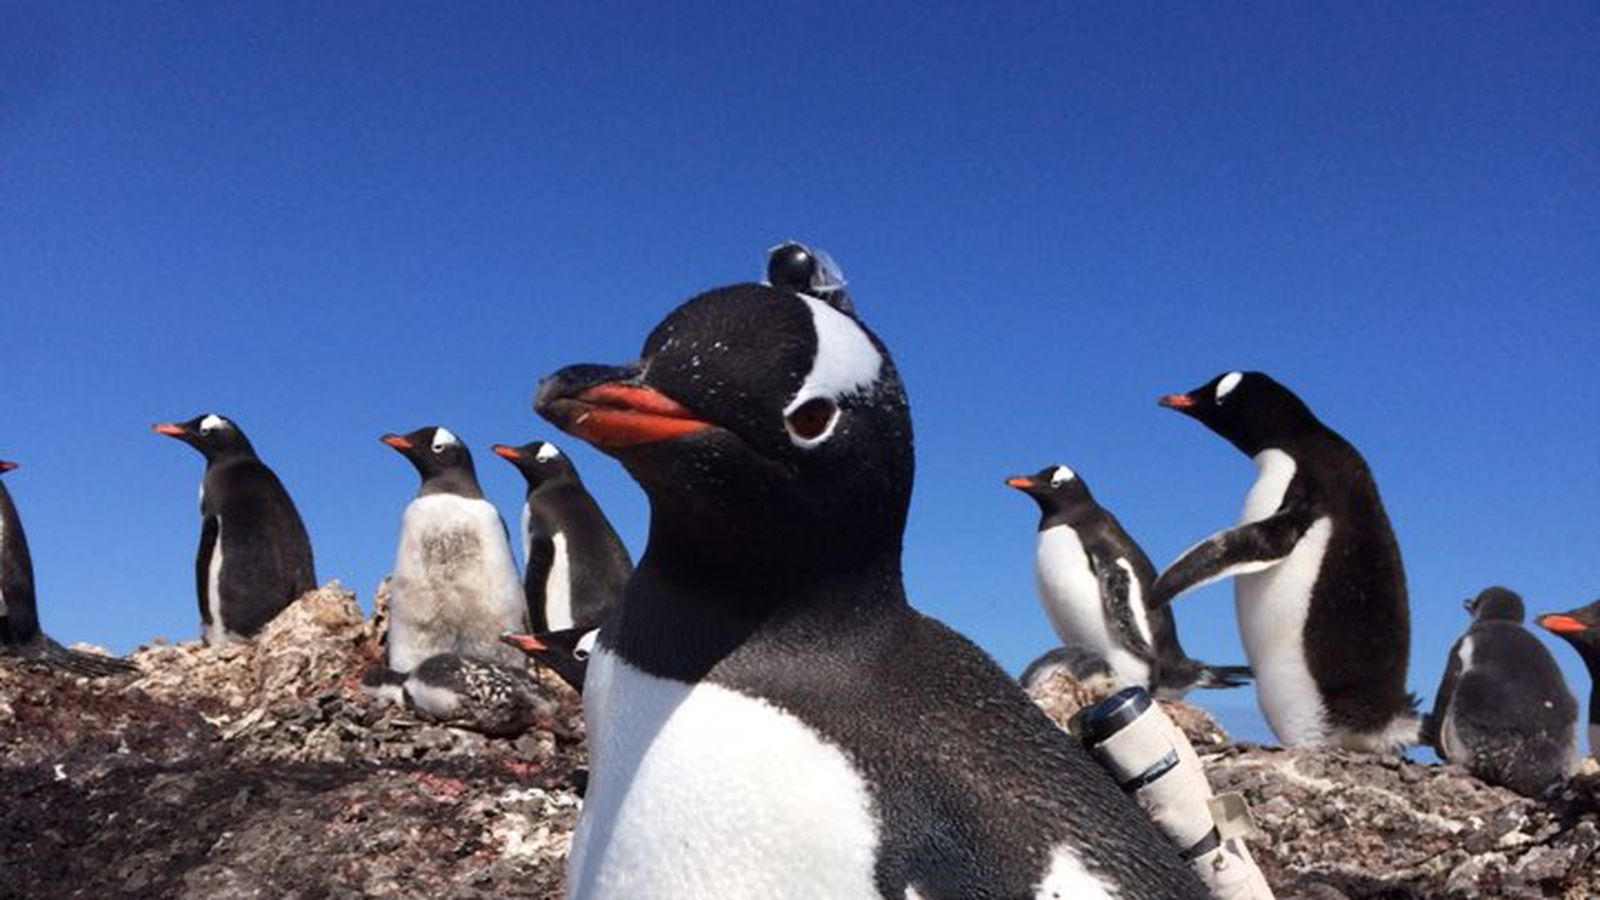 Spying on penguins is as simple as taping a camera to their backs